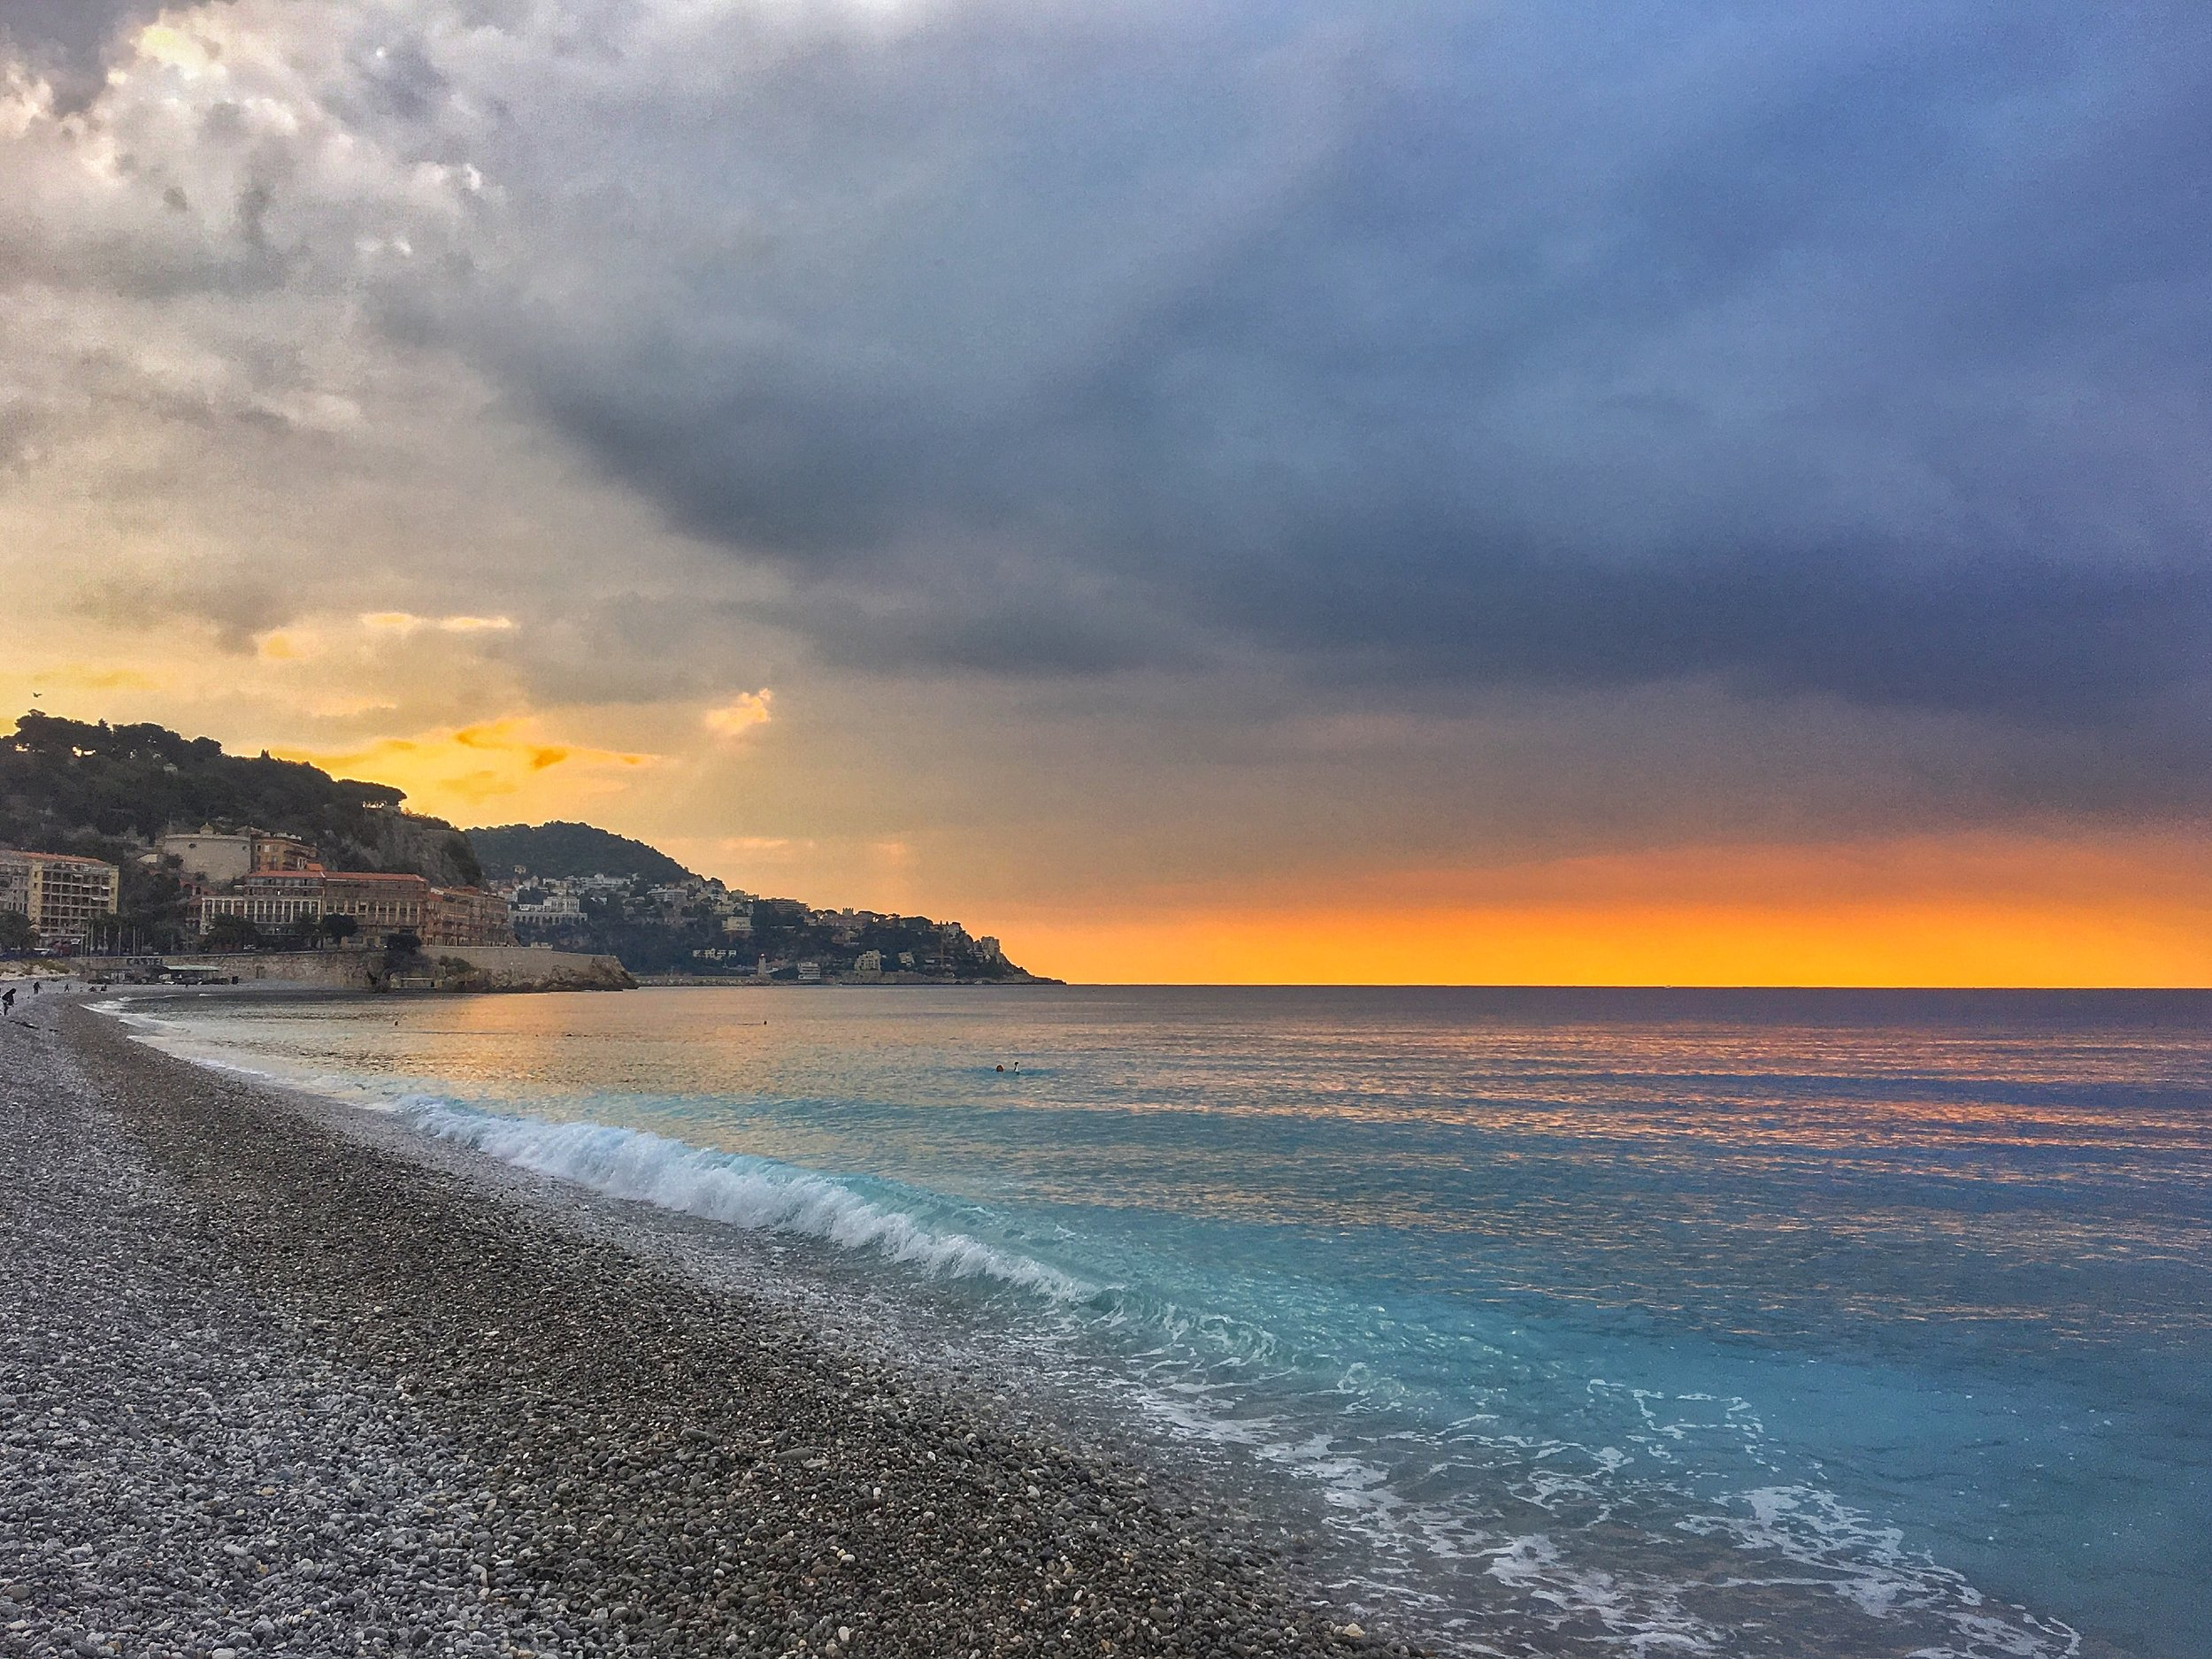 The beach at sunrise in Nice